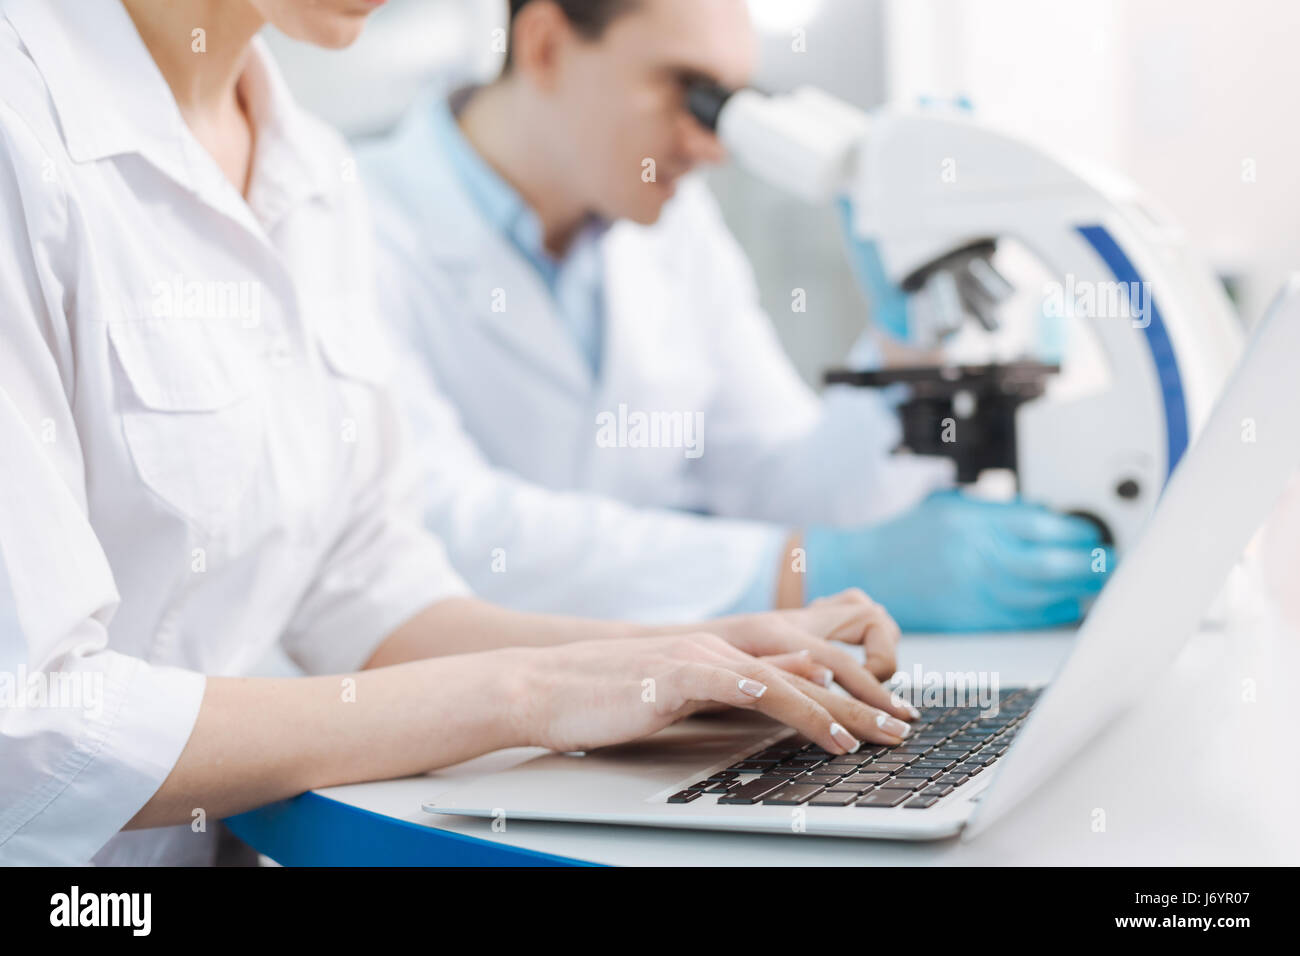 Confident practitioner working with computer - Stock Image